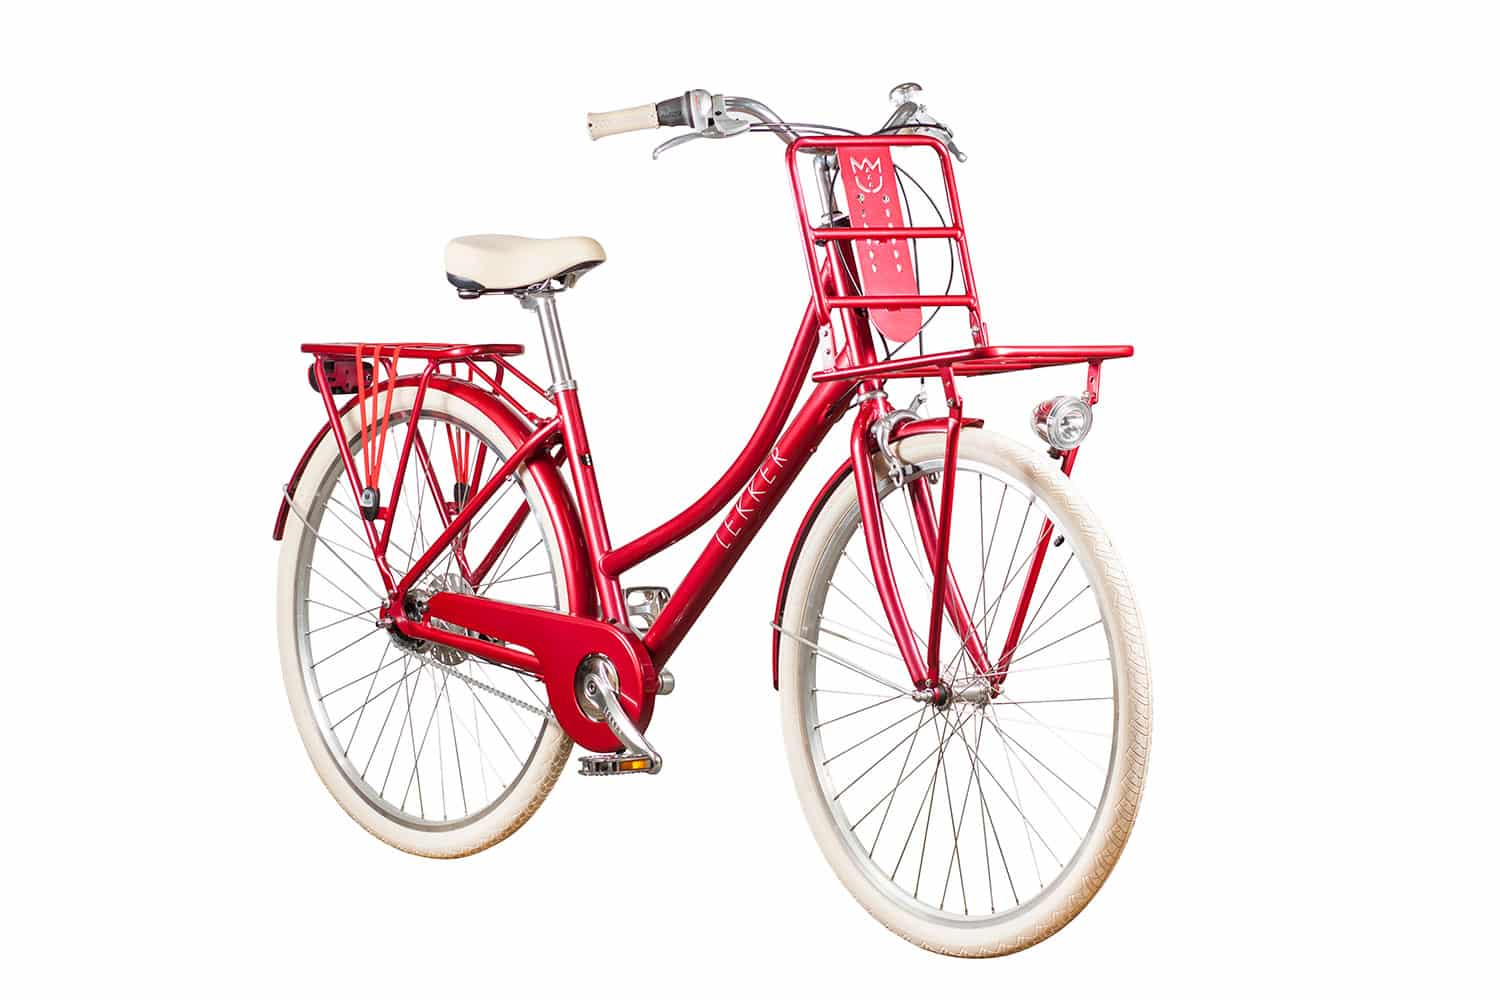 Lekker-Bikes-Jordaan-Womens-Retro-Vintage-Bike-Candy-Red-Diagonal-Front